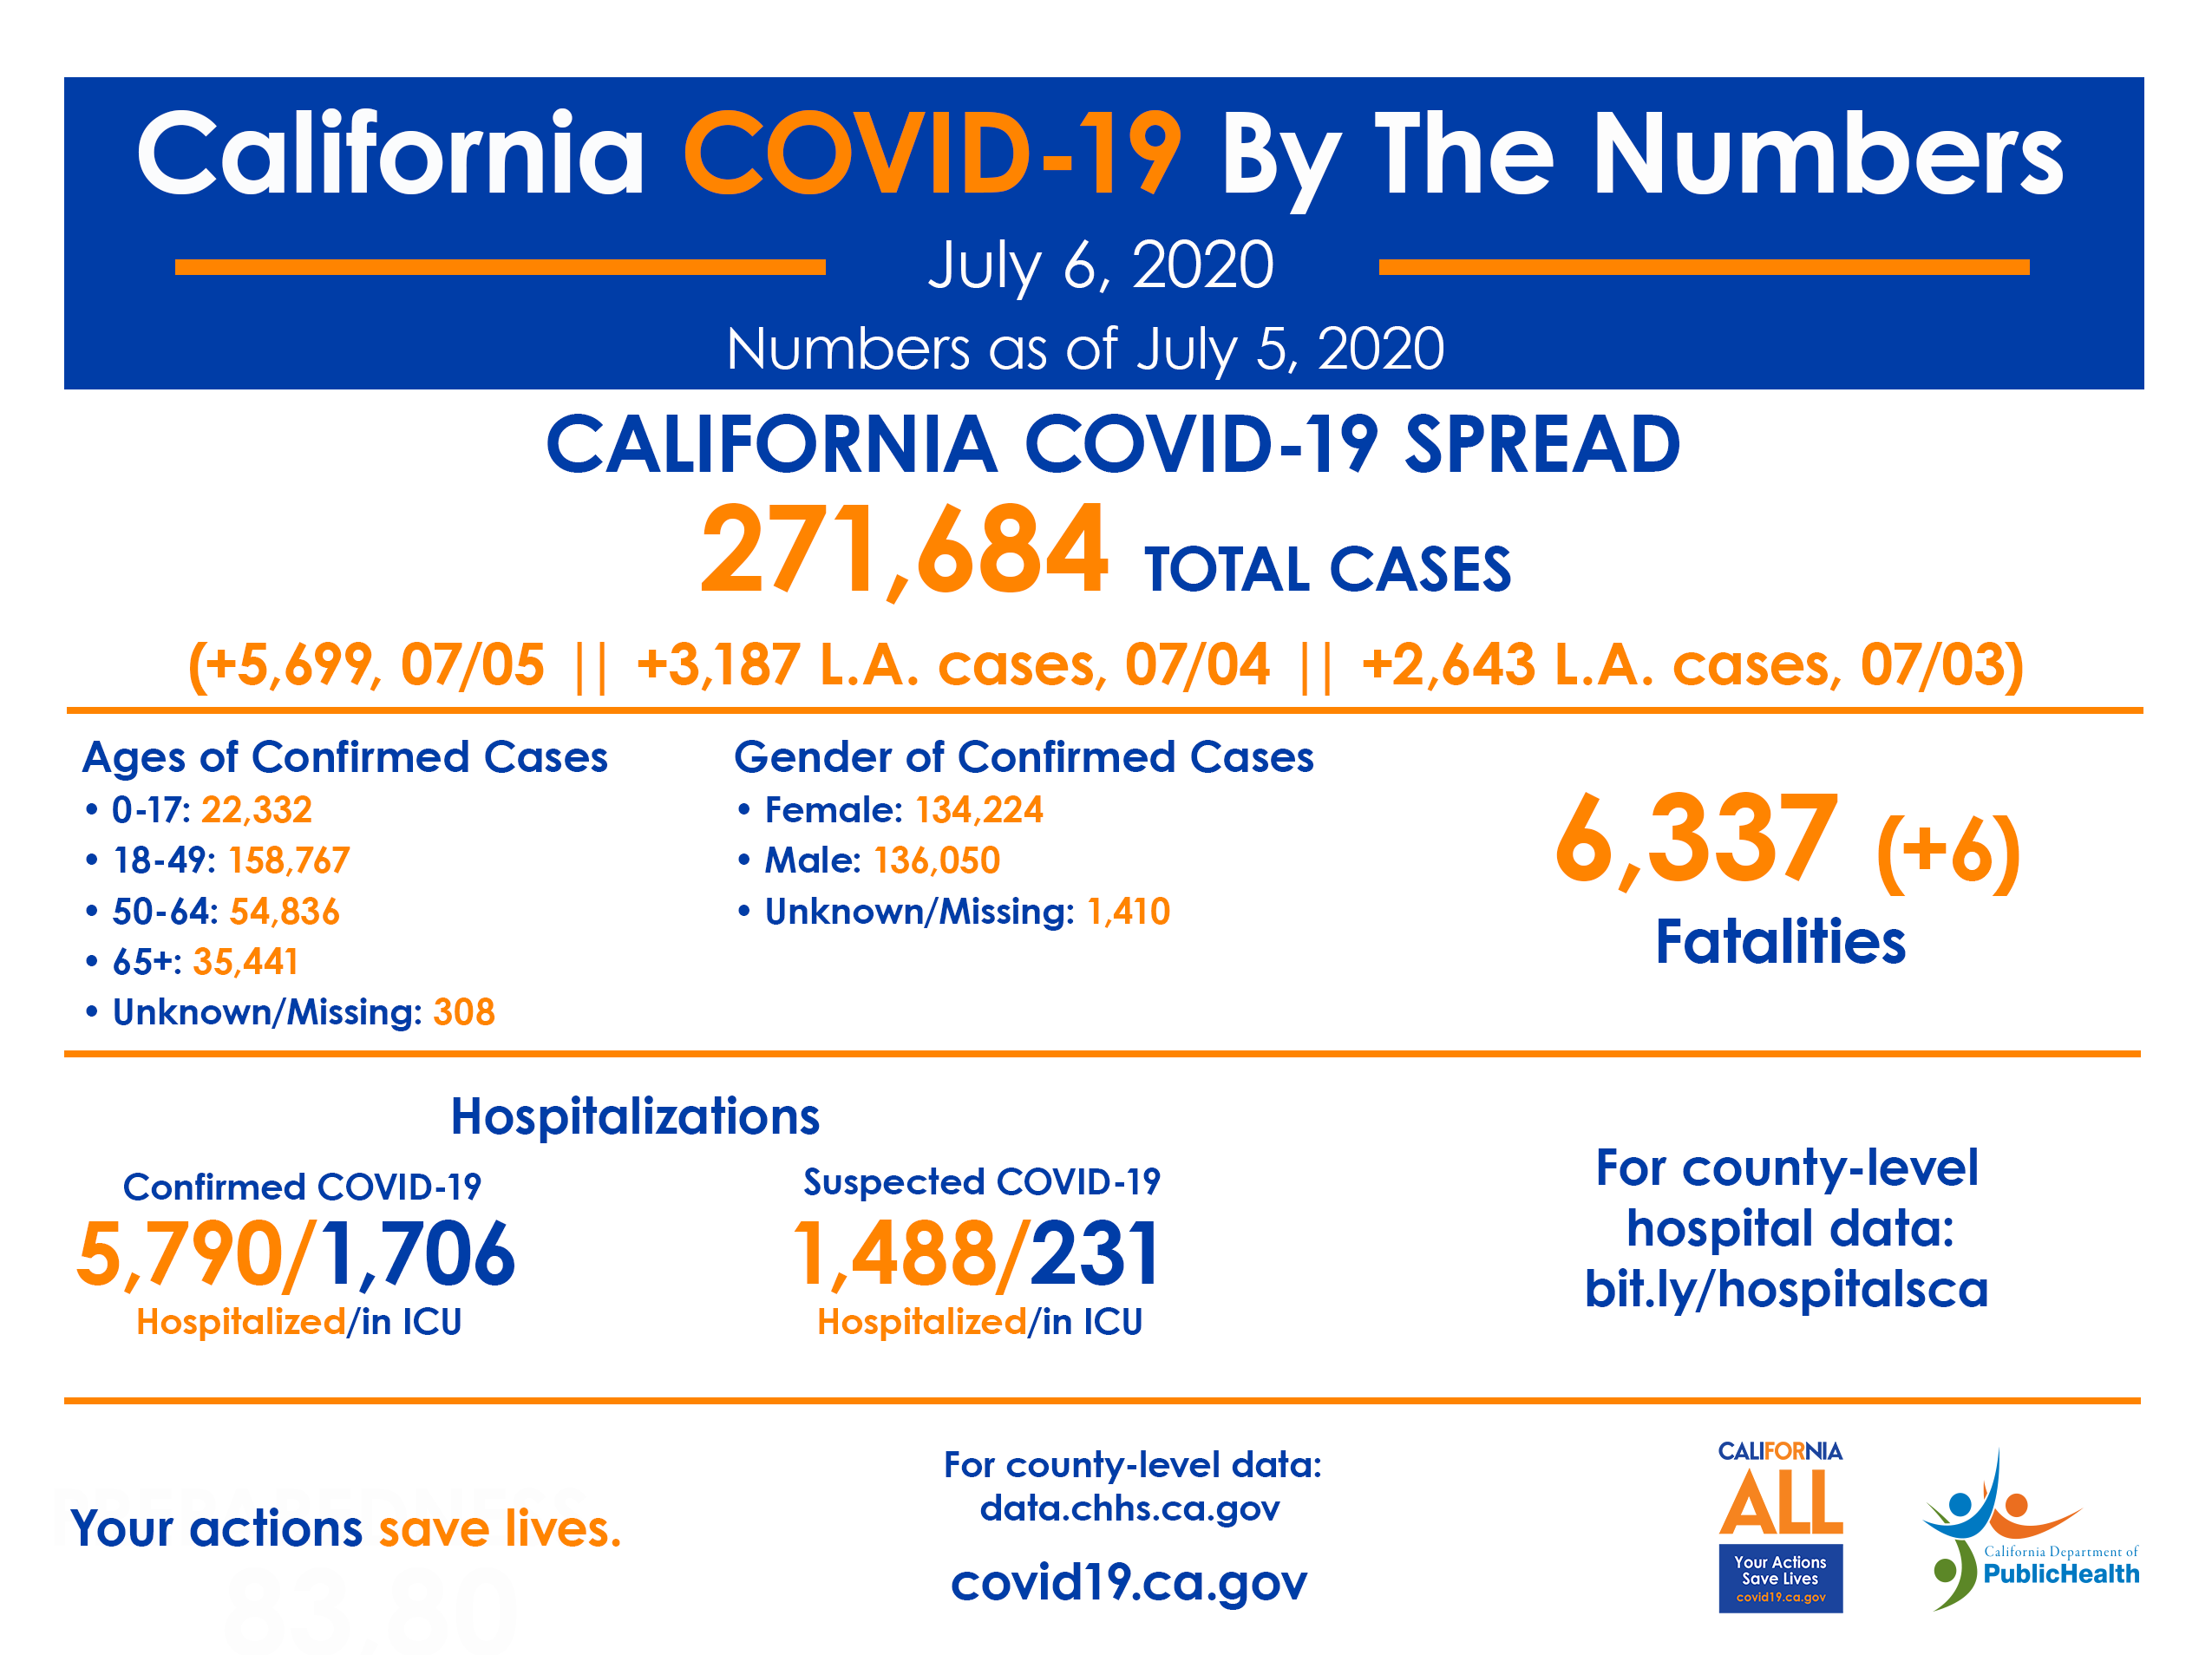 California COVID-19 By the Numbers